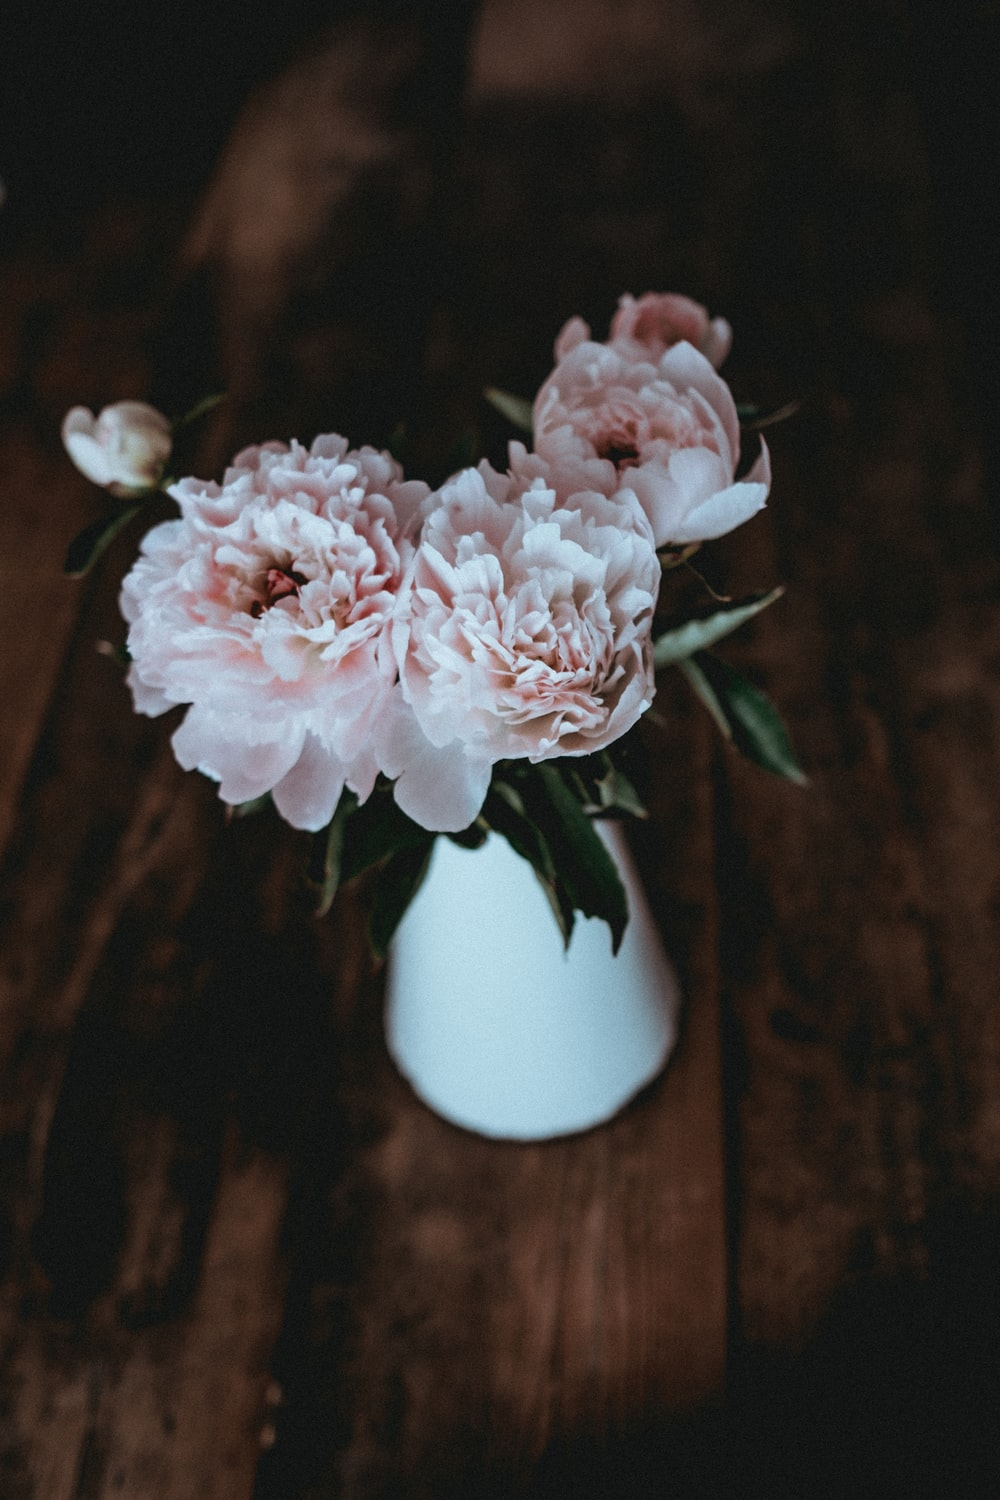 Pink peony pictures download free images on unsplash a white vase with pastel pink peonies mightylinksfo Gallery